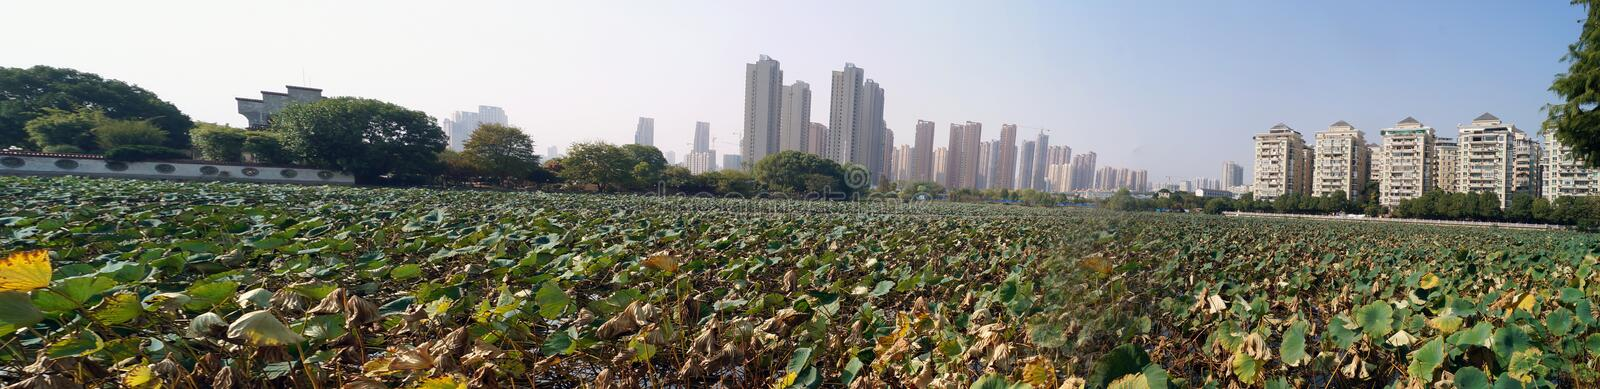 Panoramic view in Wuhan China. Landscape of the city of wuhan in China, view from the zoo near the city, bunch of plants growing at the shoe and big buildings in royalty free stock photo